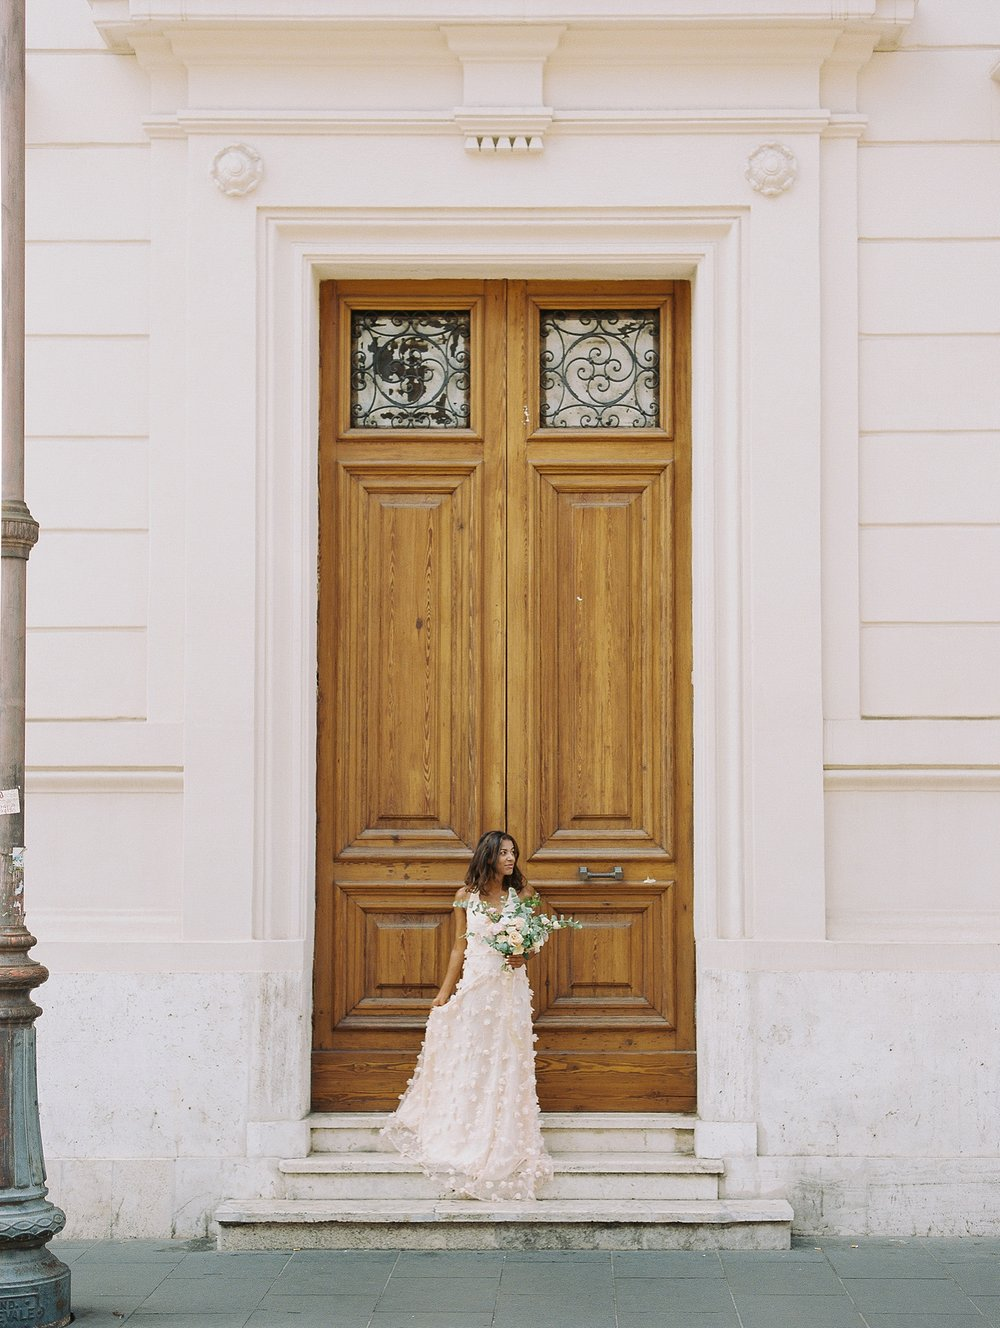 Rome Italy Wedding Italian Wedding Photography_0807.jpg